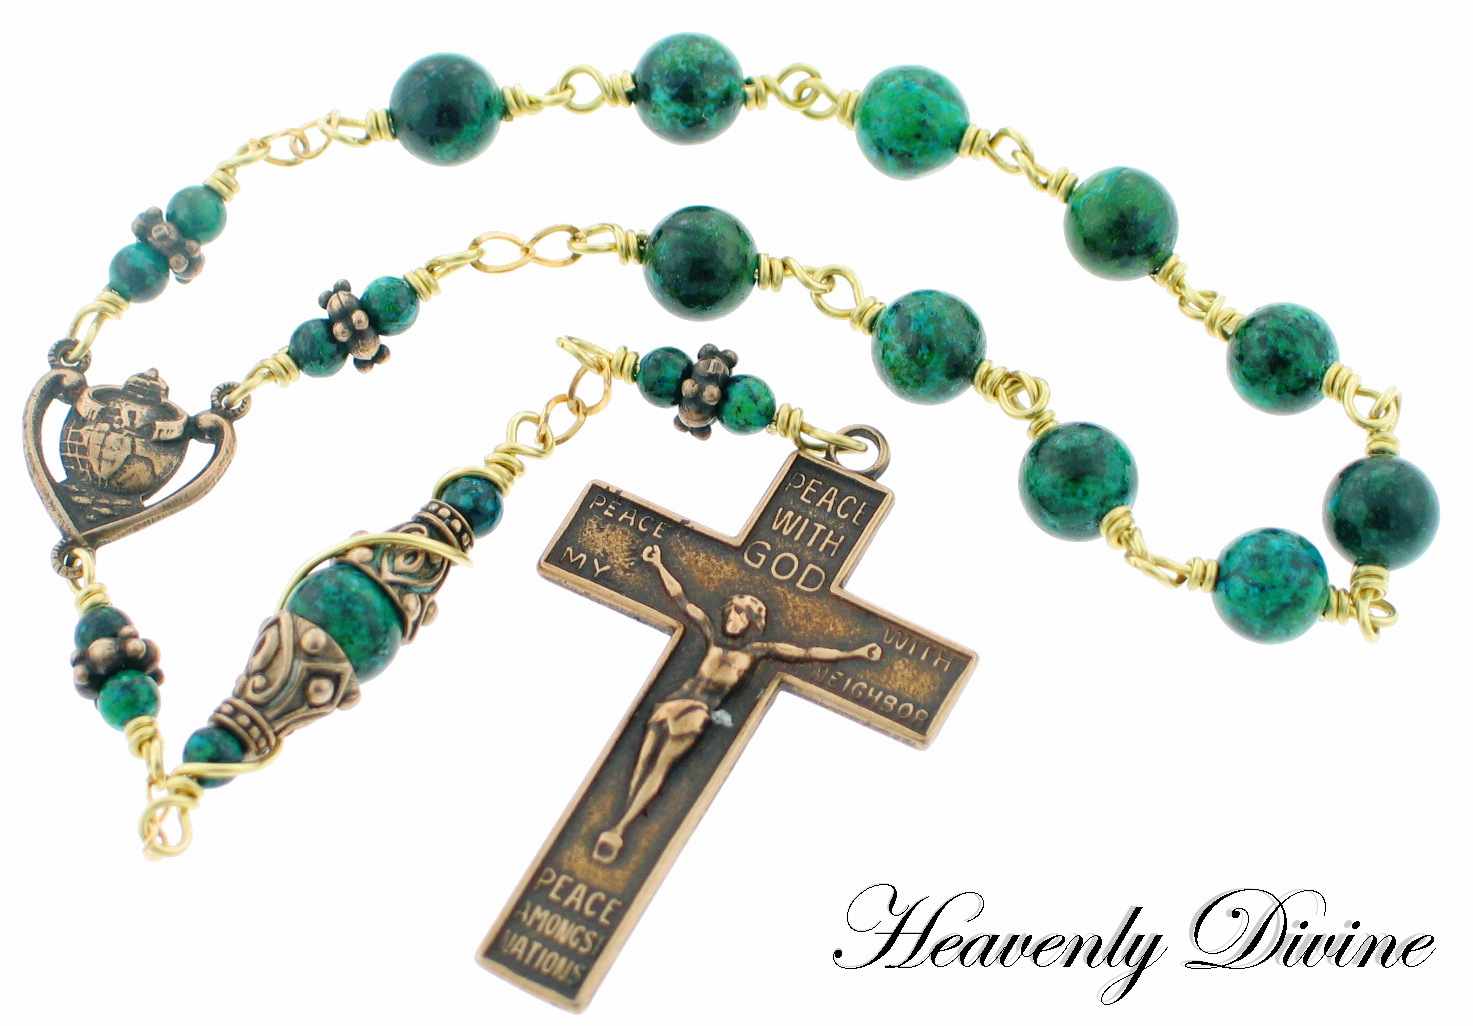 World Conversion Peace with God Bronze Pocket Rosary by Heavenly Divine